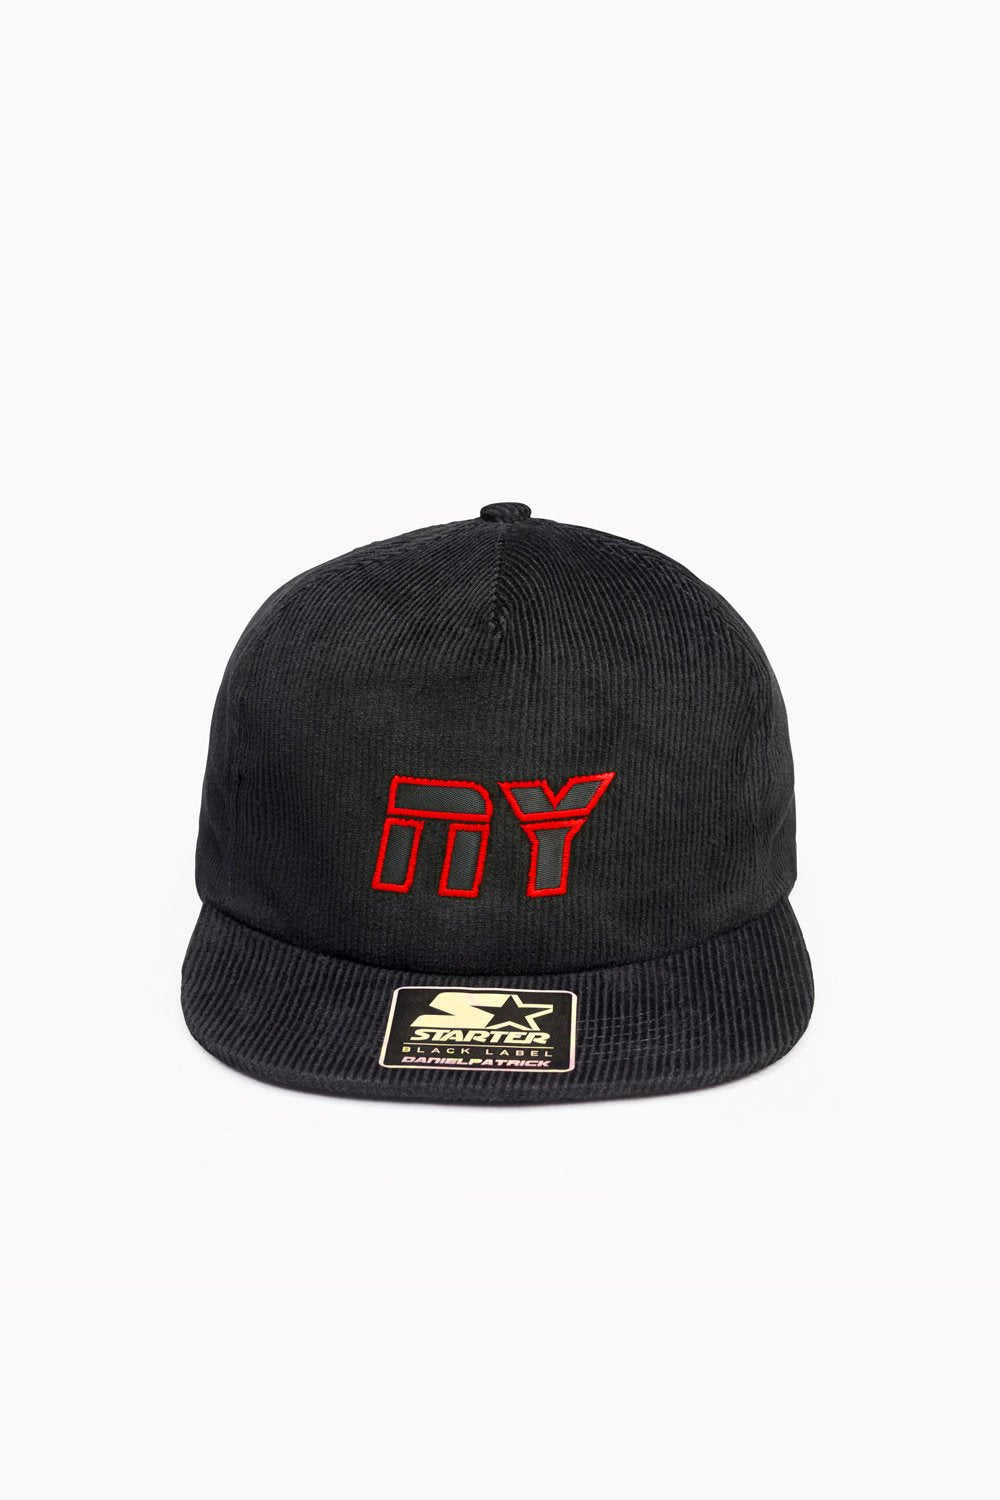 NY 5-panel snapback cord / black + red + black